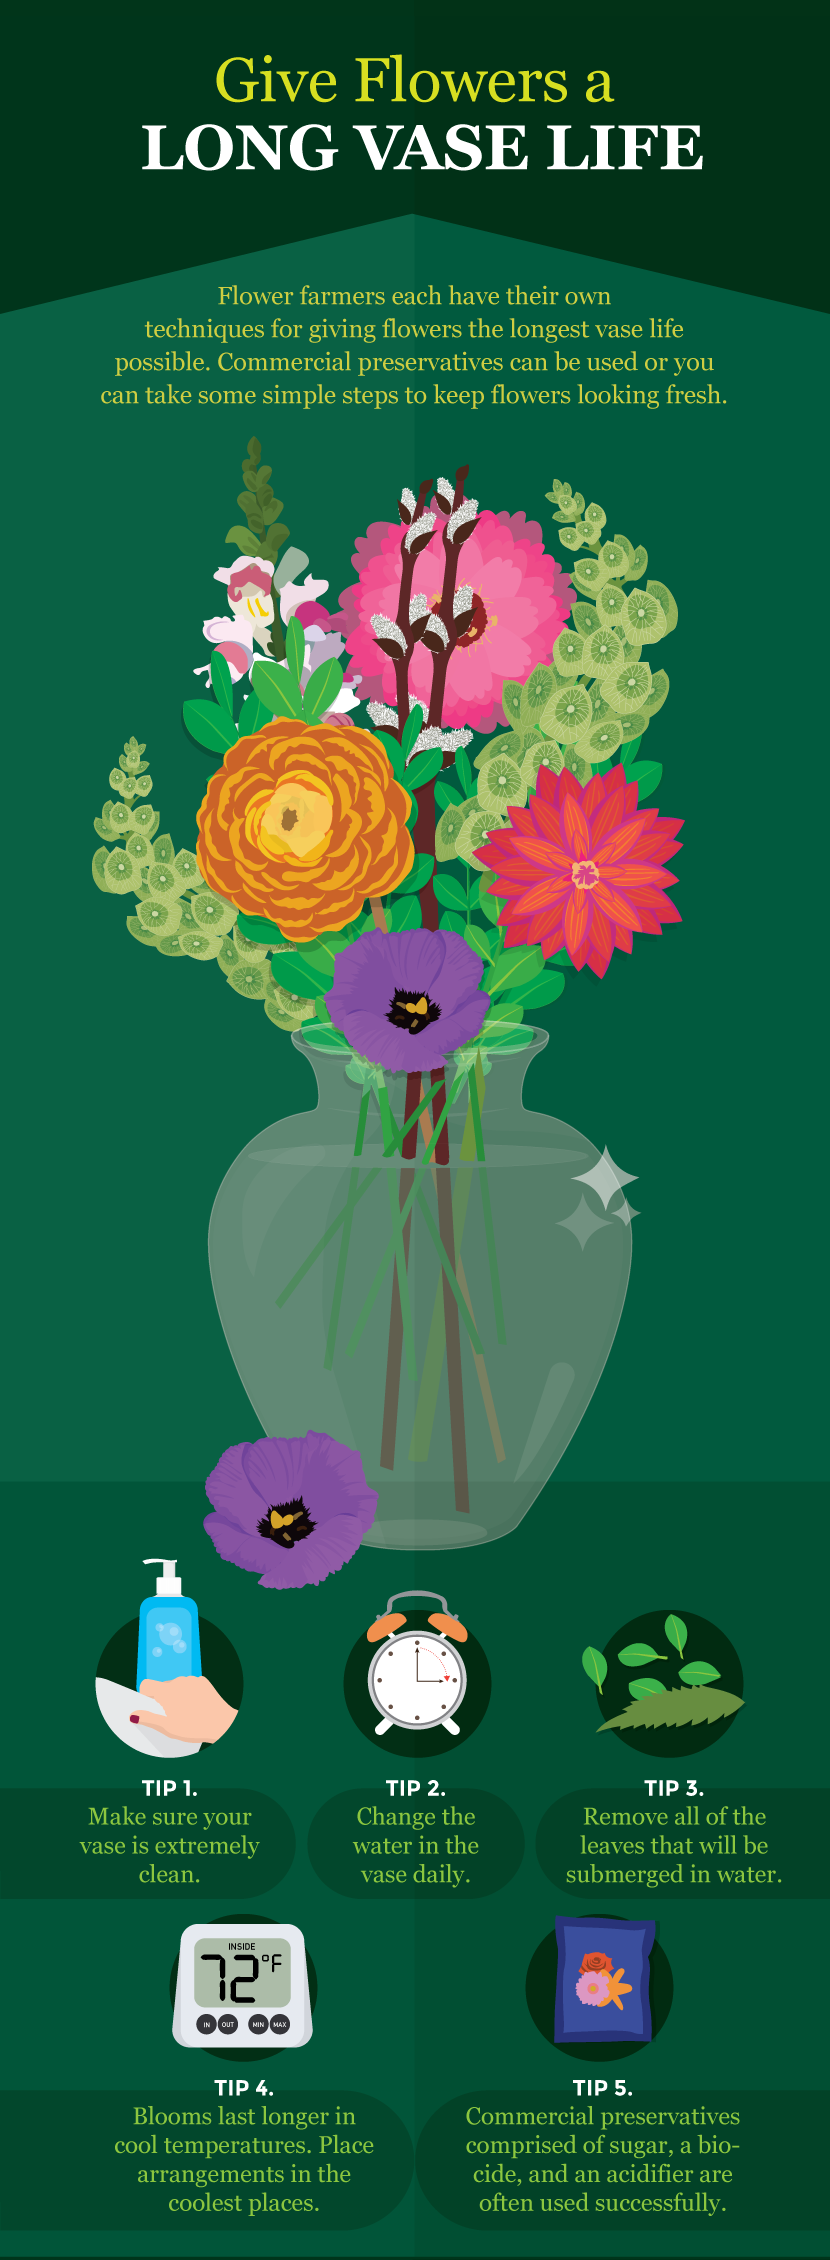 Give Flowers a Long Vase Life - A Guide to Growing Your Own Cutting Flowers